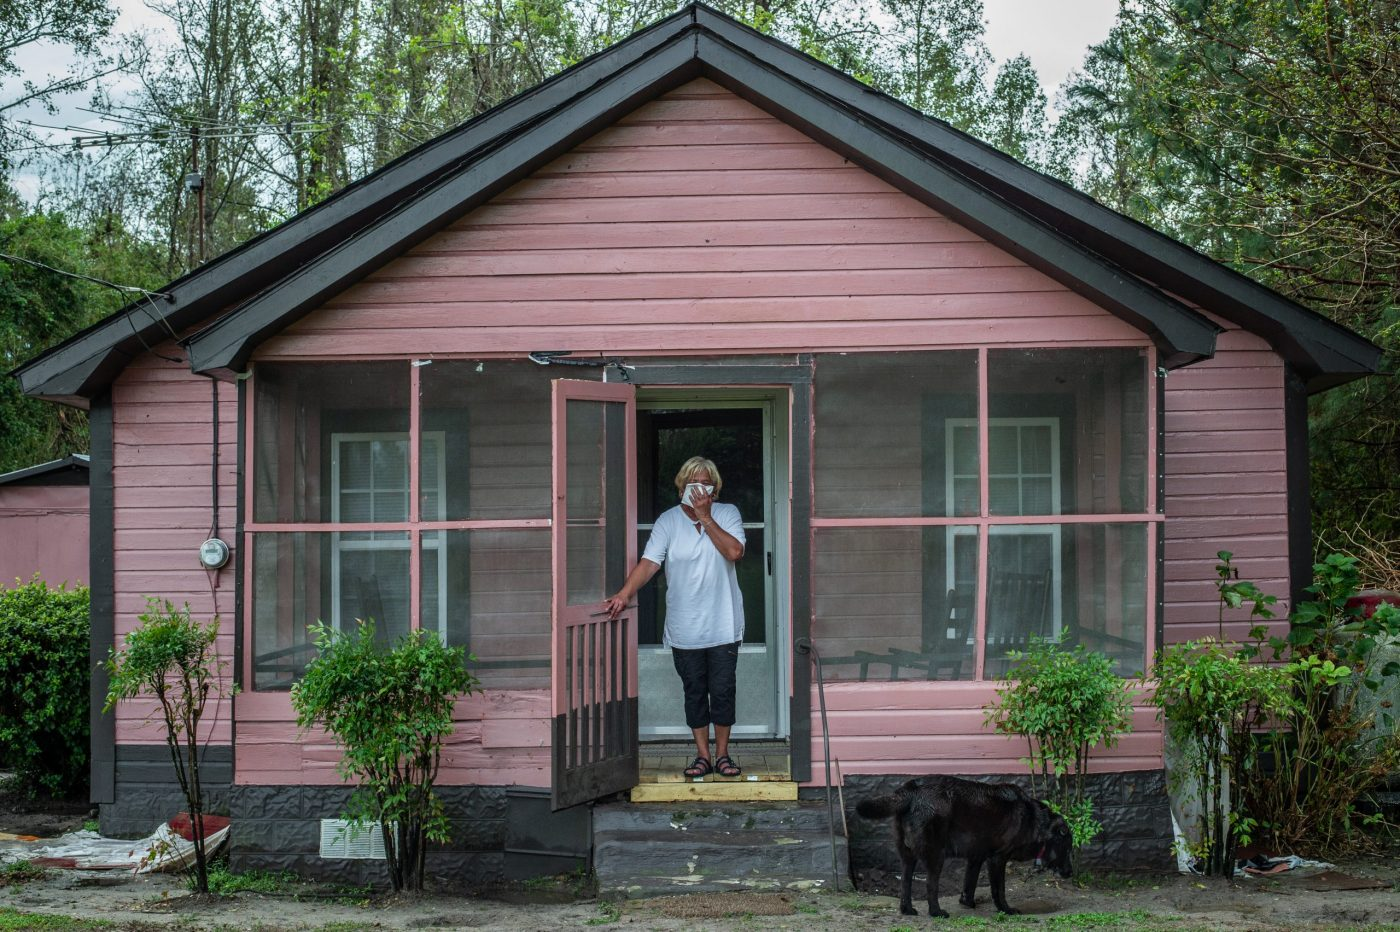 Vertical explainer photo 3 - Activist Elsie Herring, stands on the porch of her family home, holding a handkerchief over her mouth to filter out manure being sprayed on the field next door / Photo Credit: Jo-Anne McArthur / We Animals